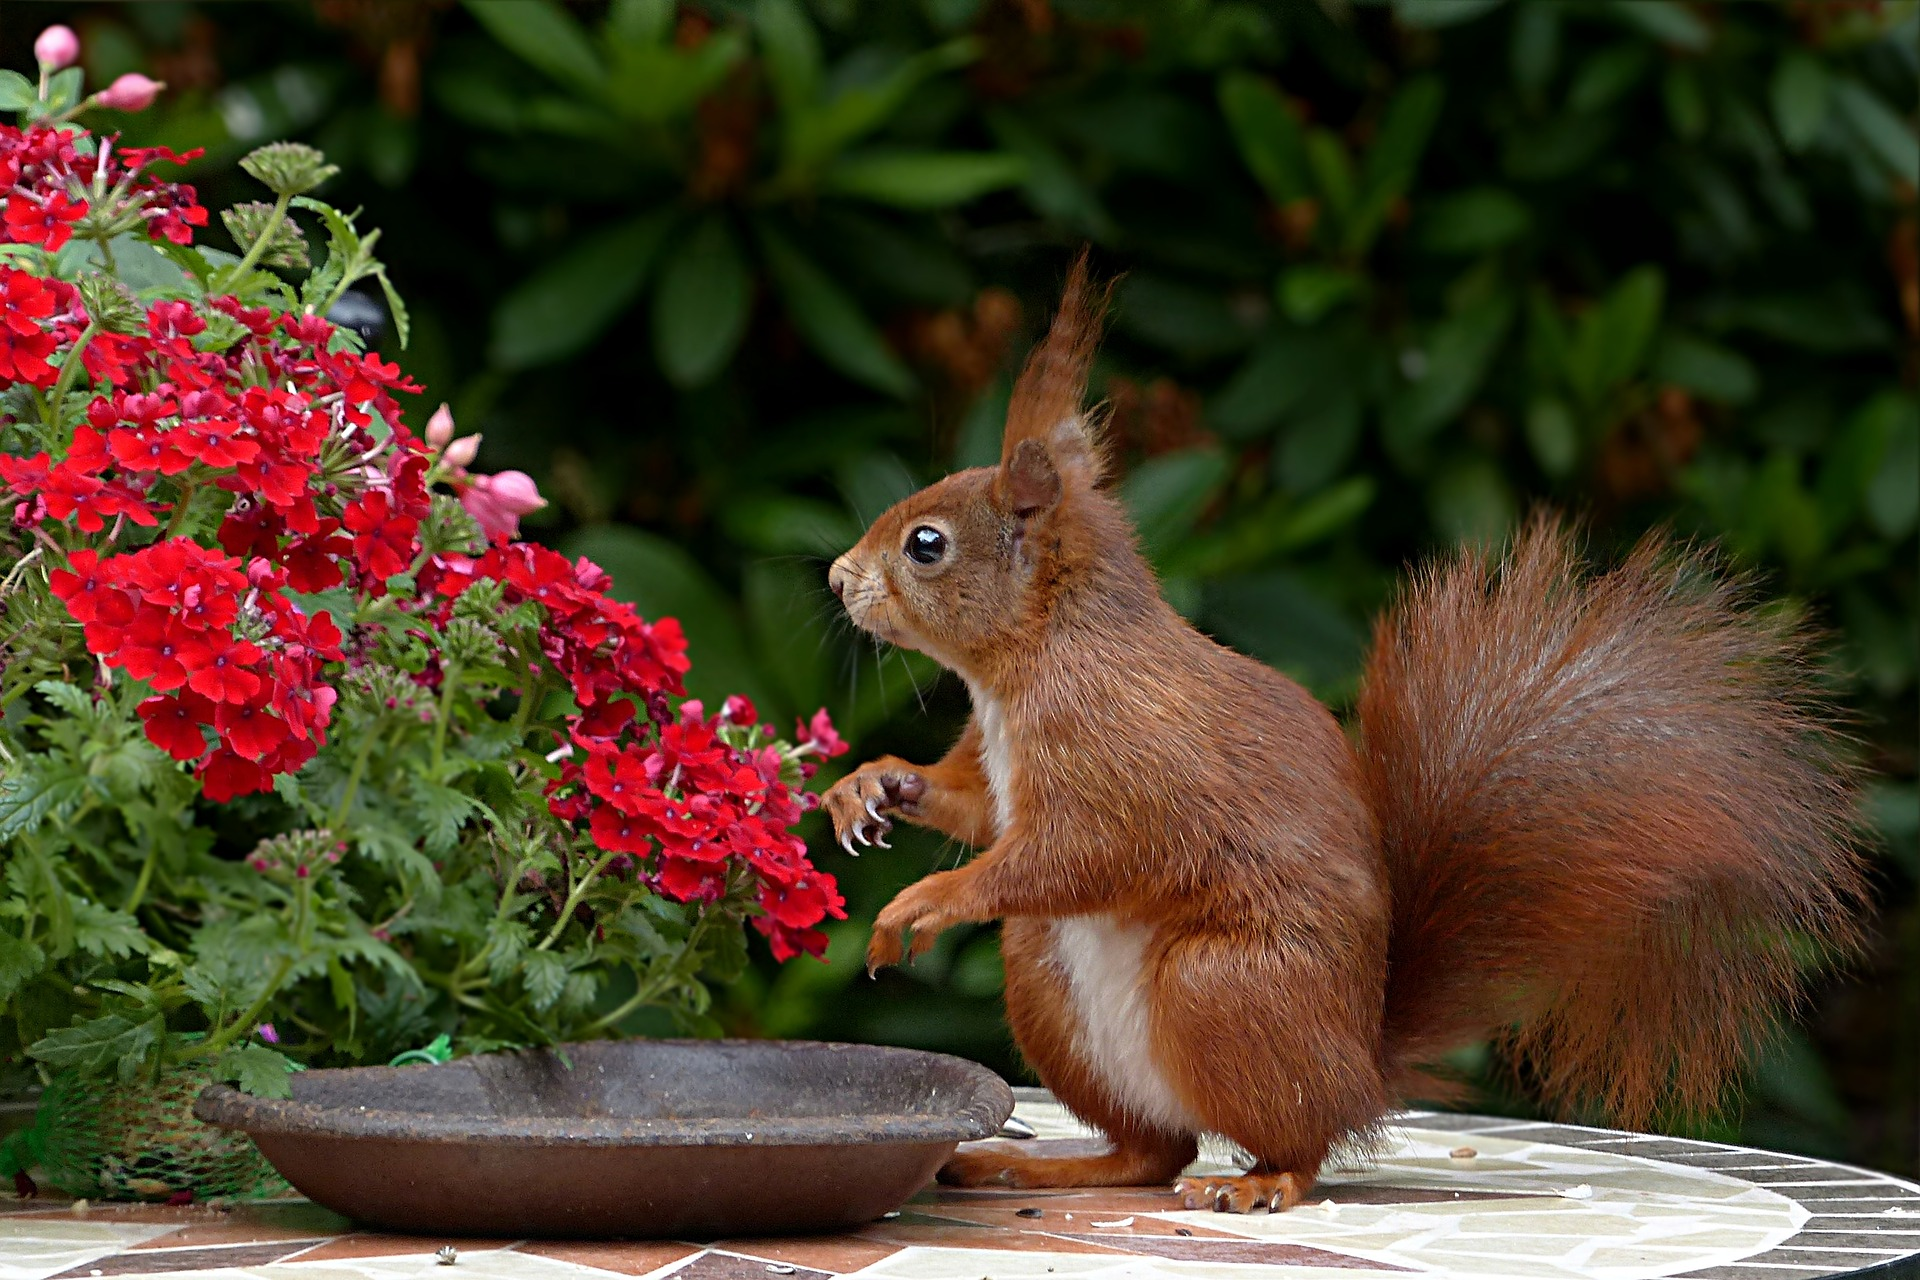 from to squirrels beds out of pin flower garden repel keep squirrel repellent how your